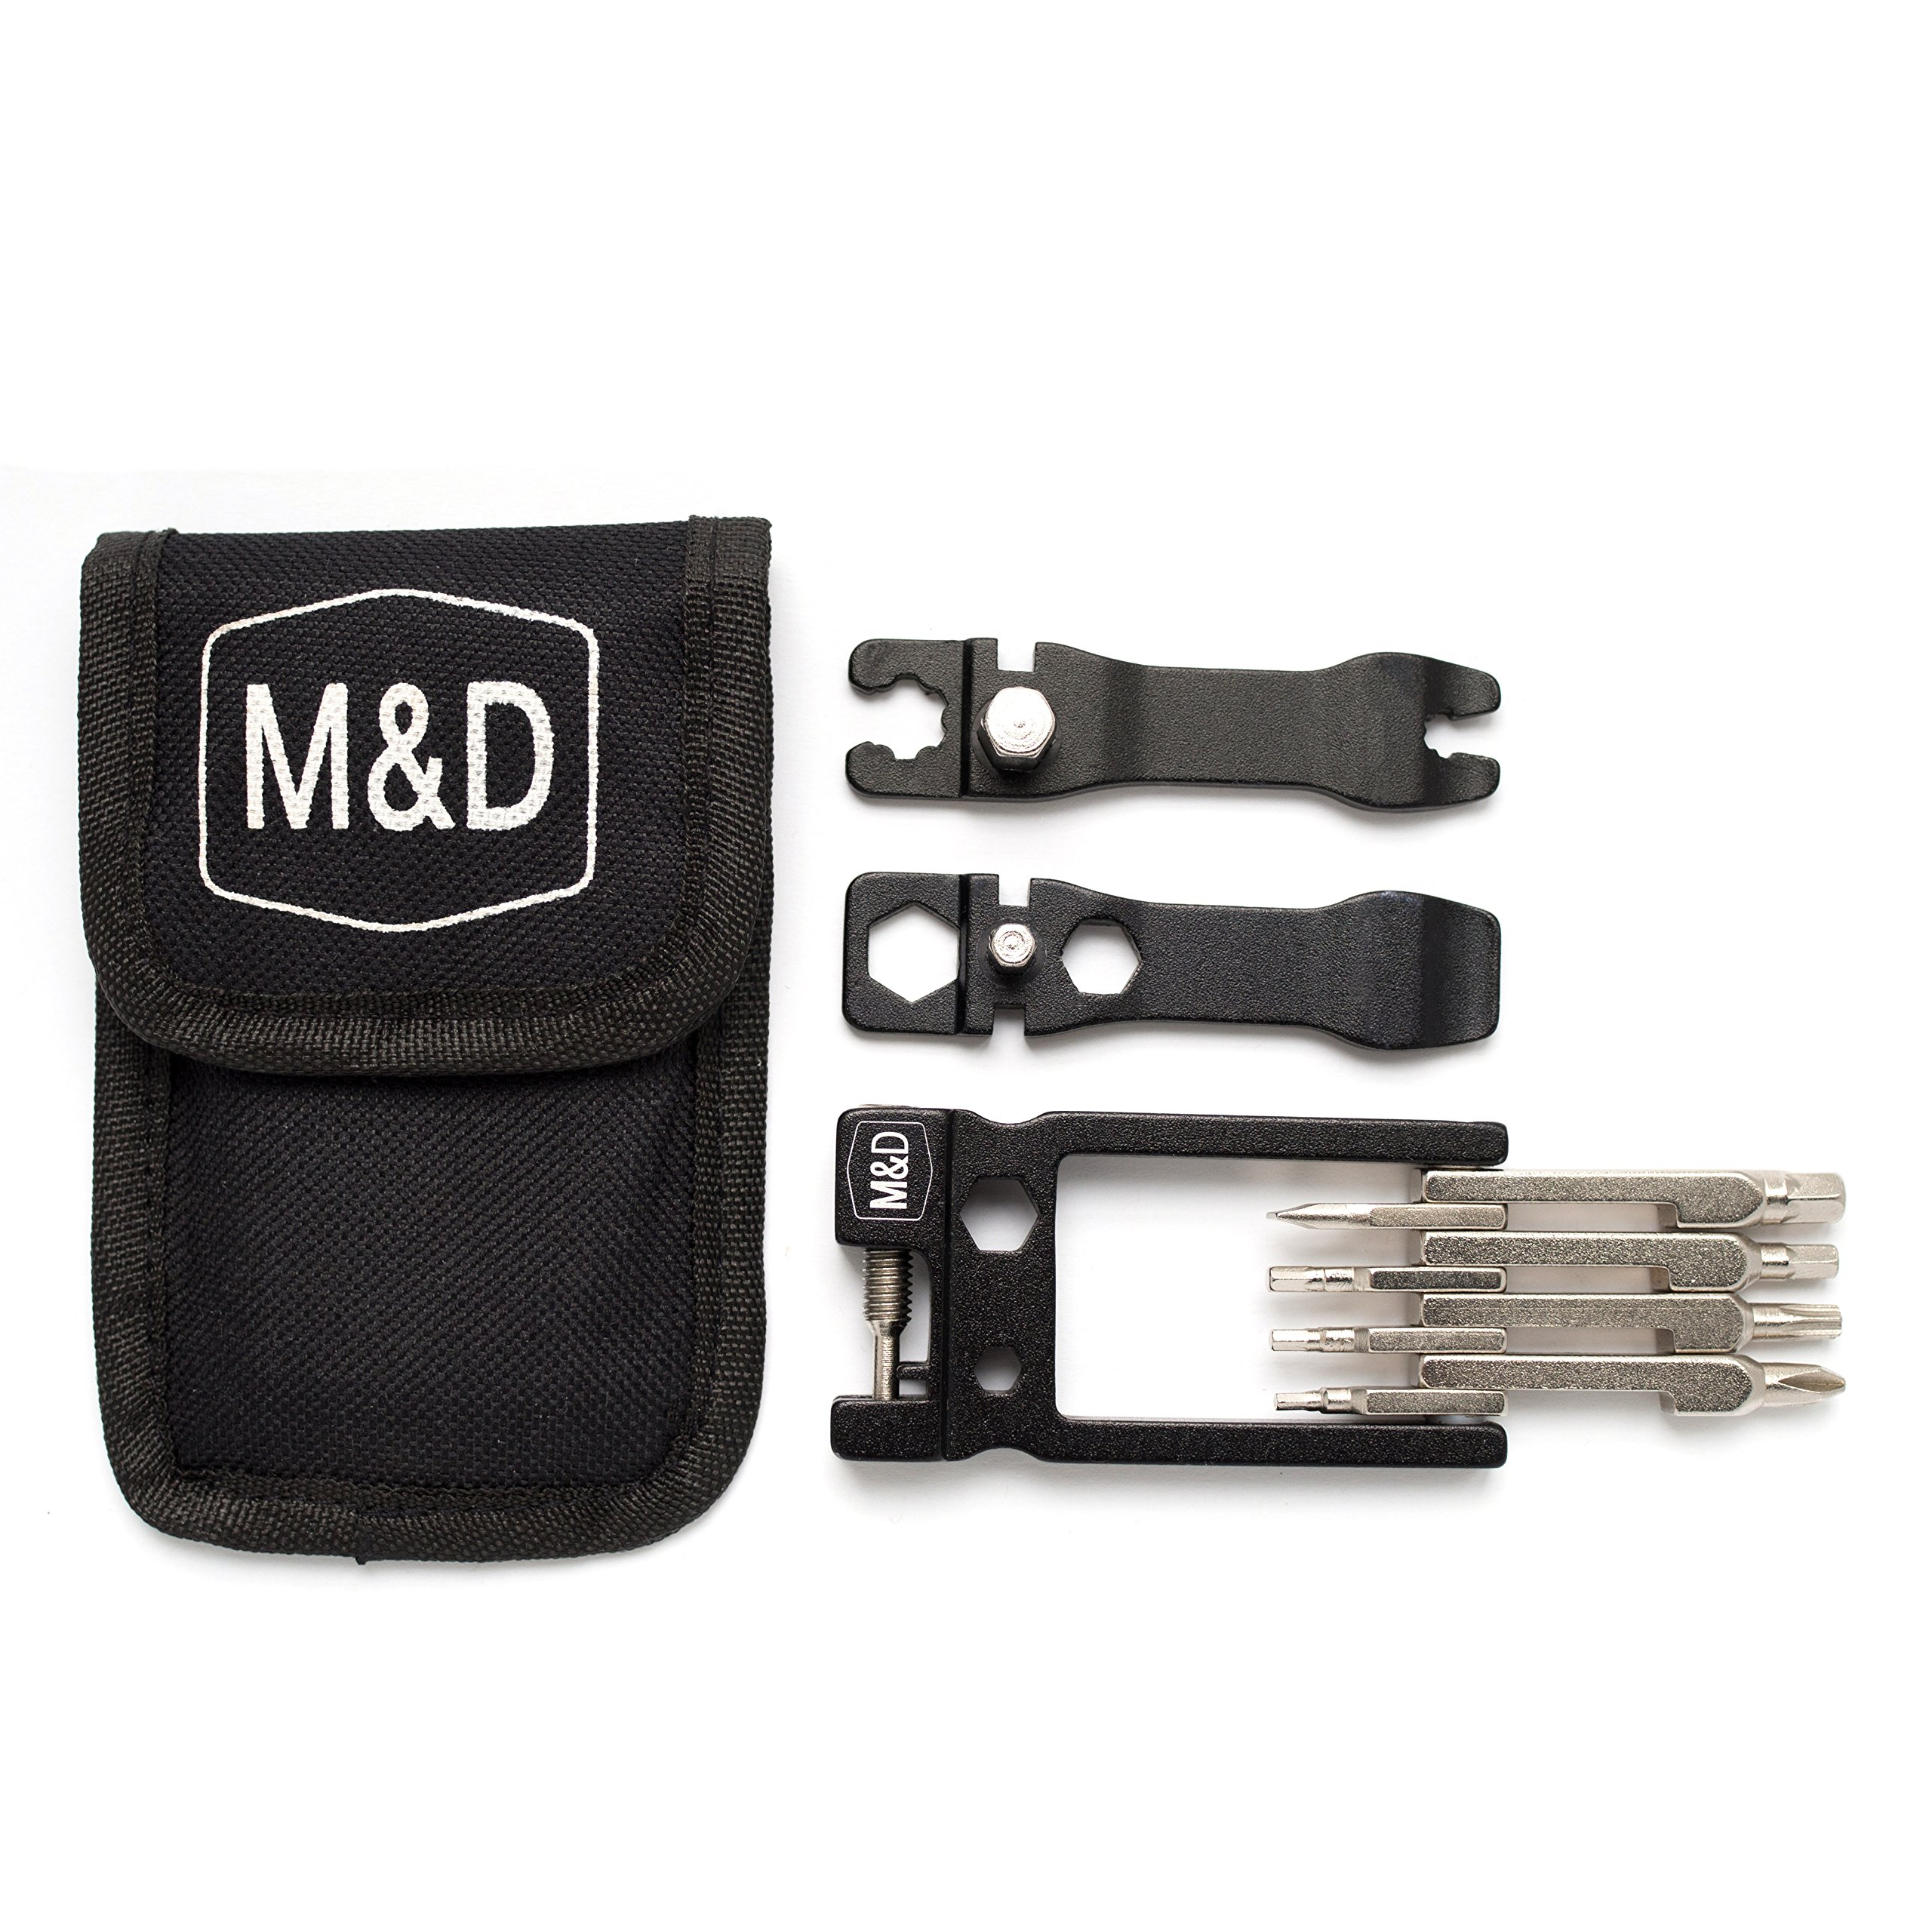 Bike Multitool MadWares 24 in 1 Bicycle Multi Tool Repair Kit with Wrench Set by M&D Wares (Image #8)